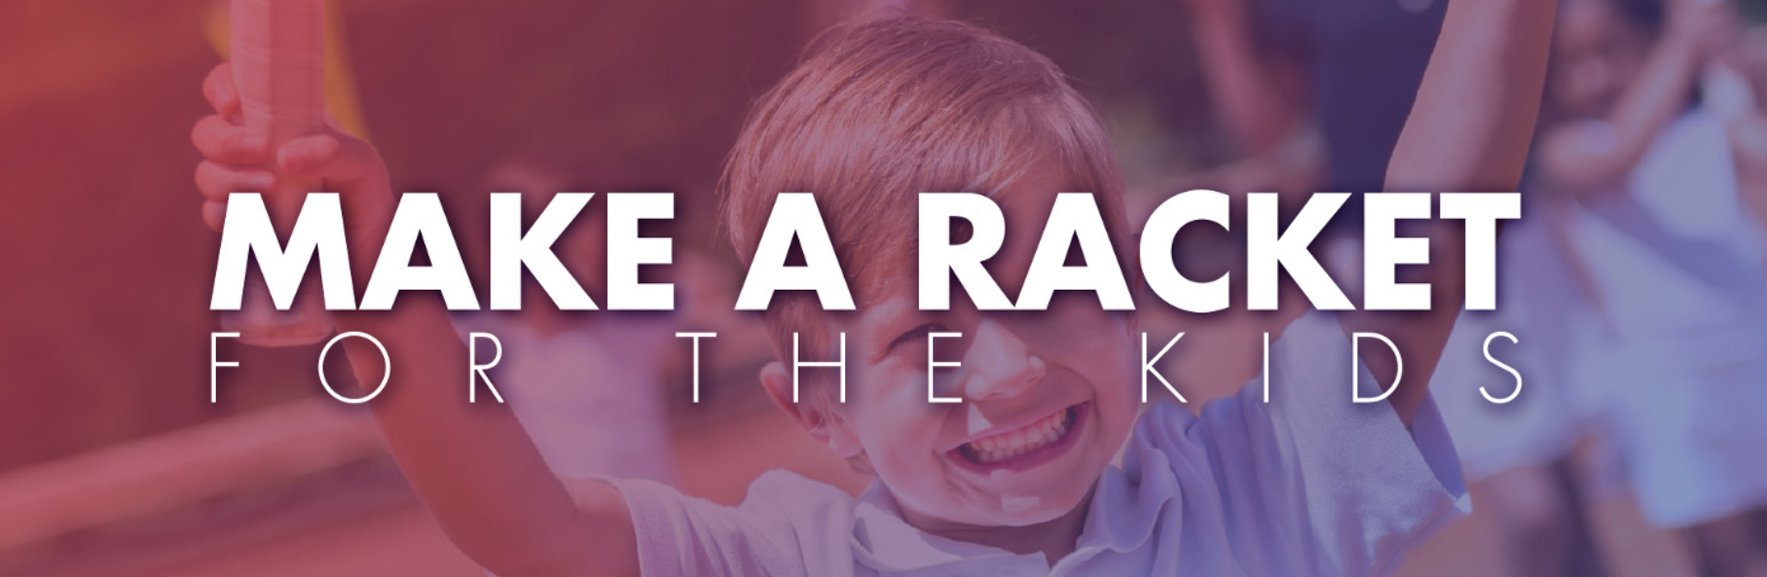 4th Annual Make a Racket for the Kids! image